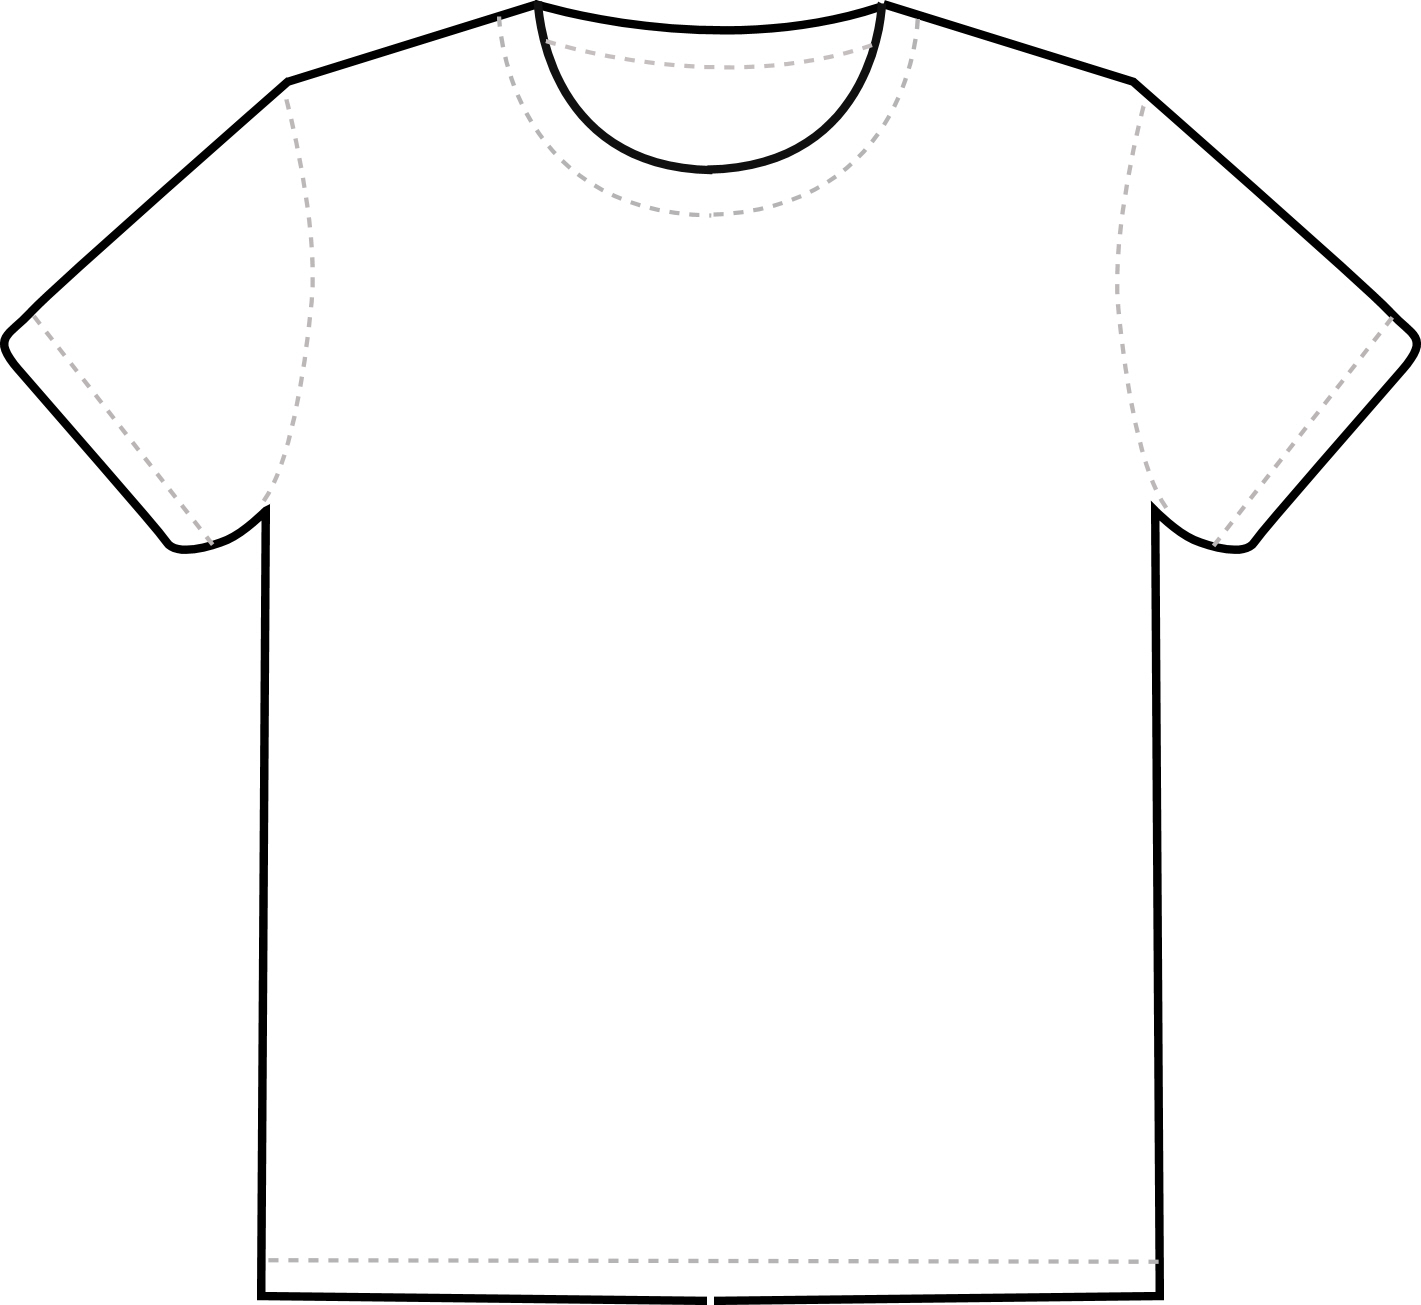 Blank white t shirt template clipart best for Blank t shirt design template